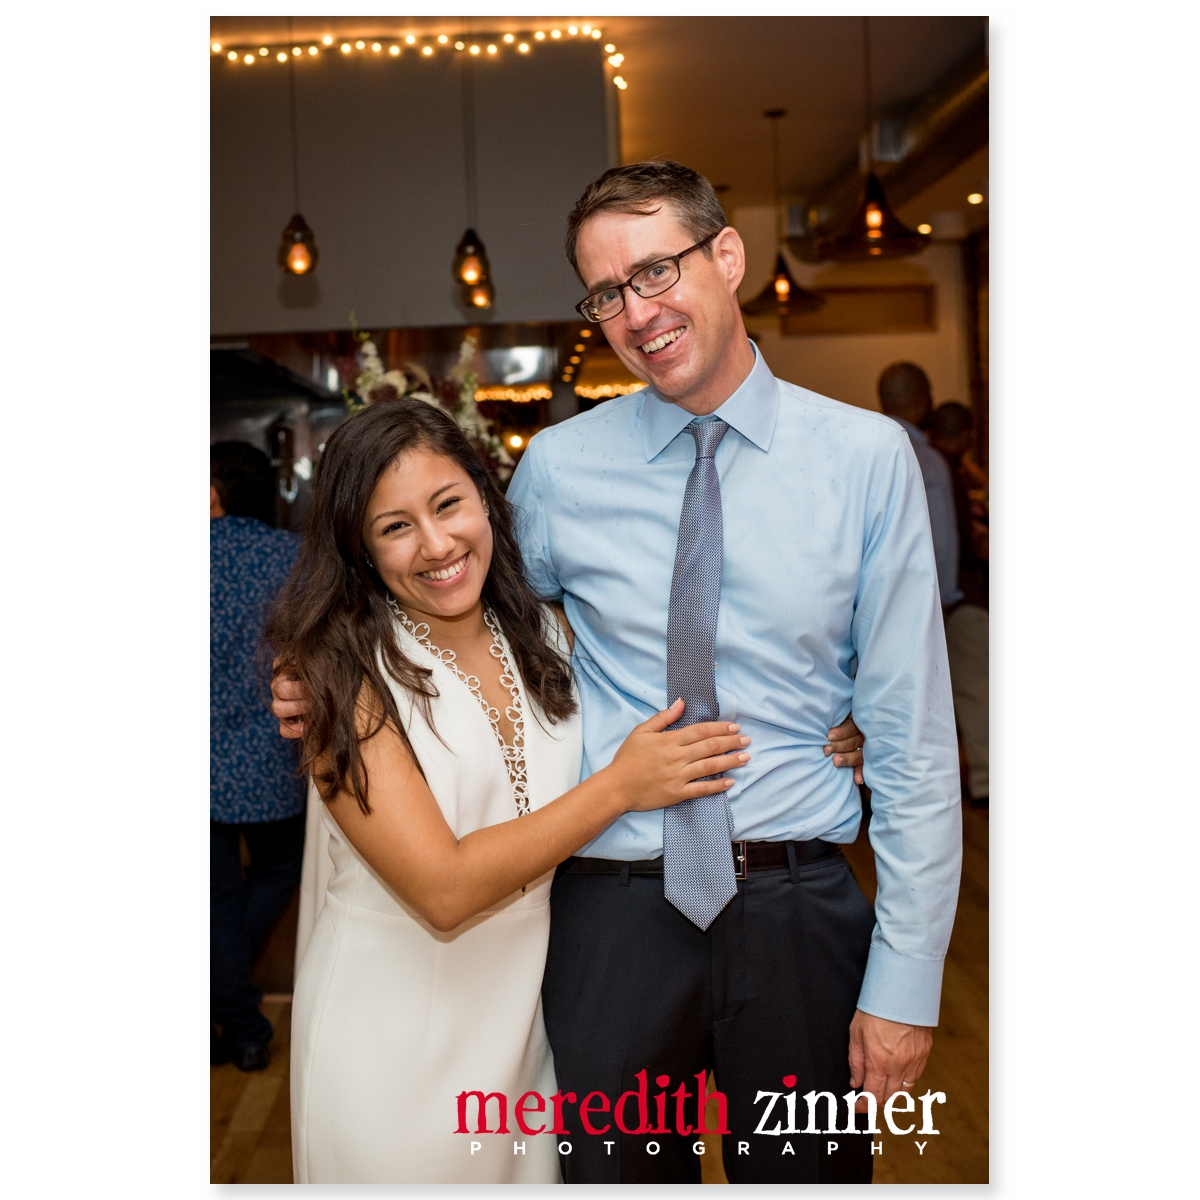 Meredith_Zinner_Photography_StilesCelebration_0459